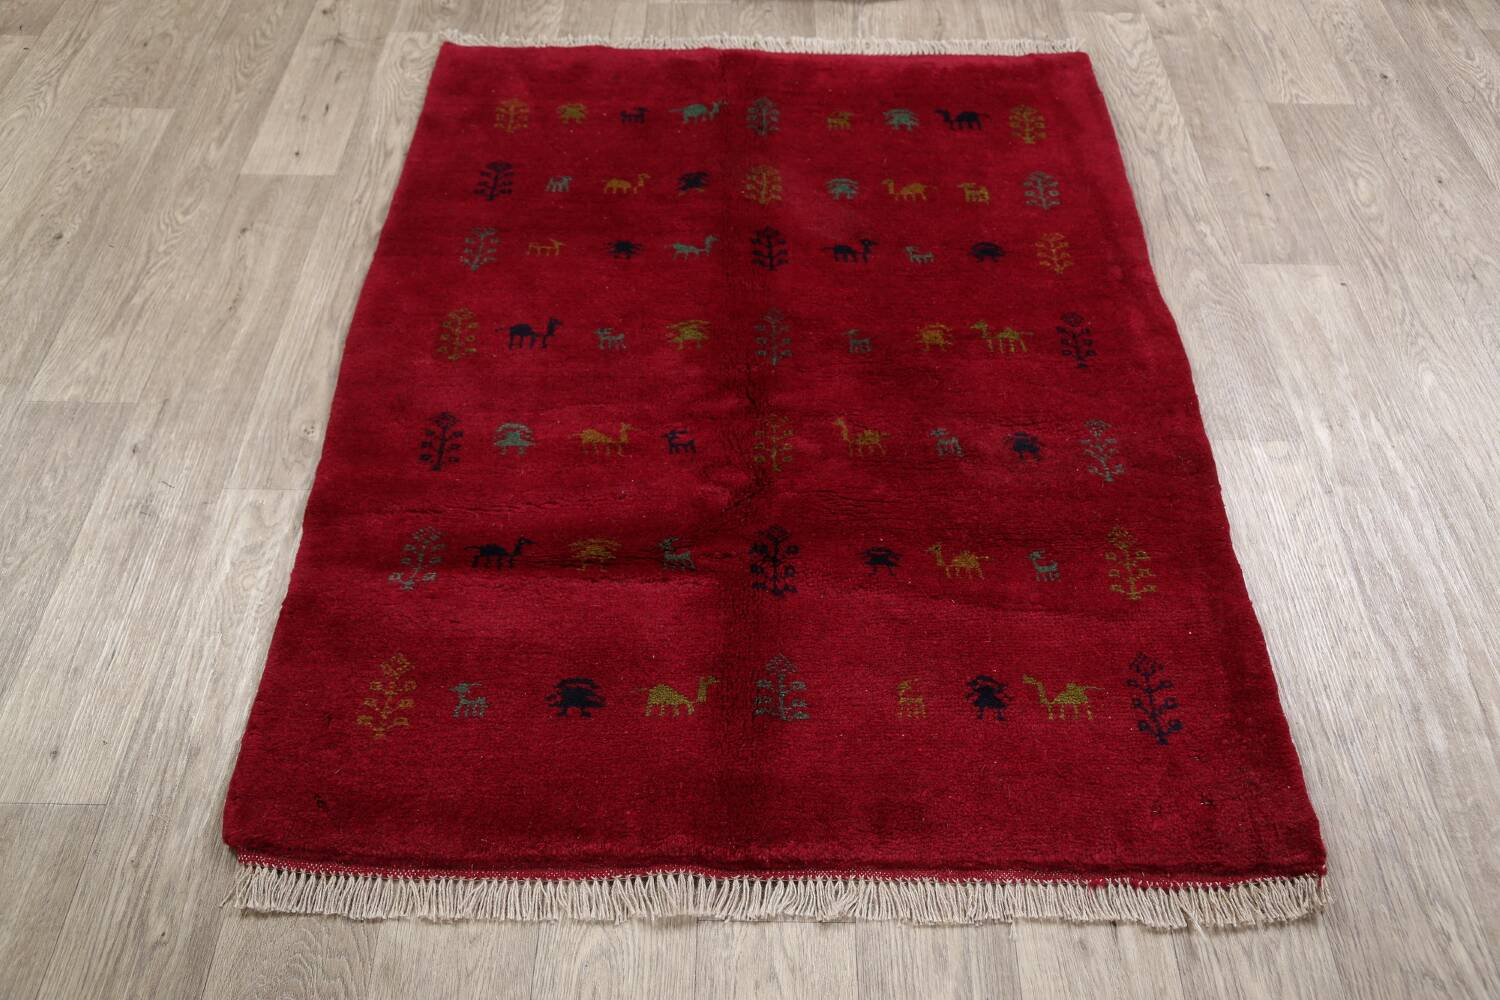 Tribal Red Gabbeh Shiraz Persian Area Rug 4x5 image 12